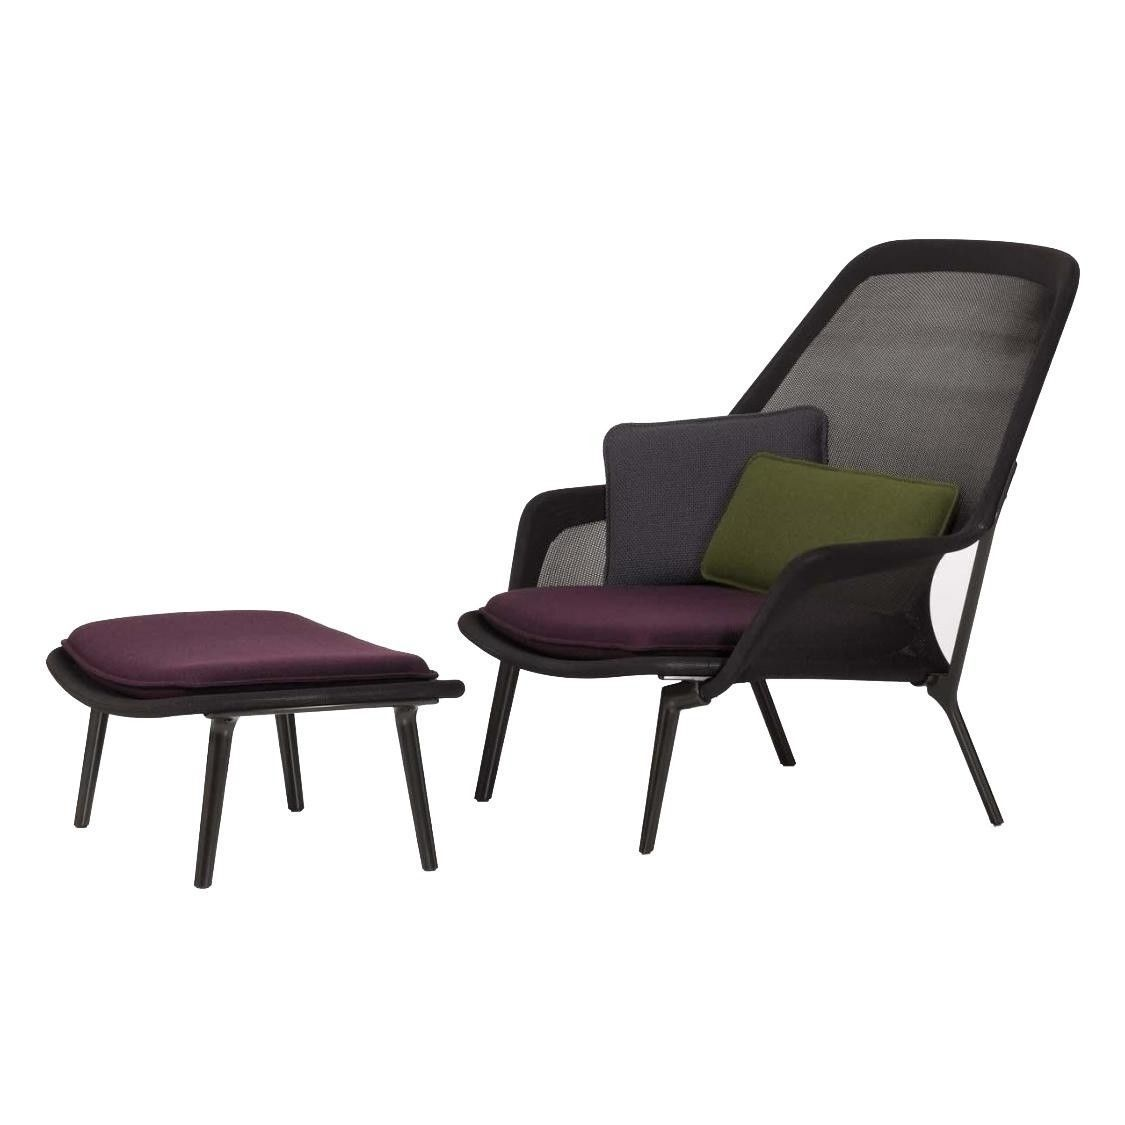 slow chair lounge chair & ottoman   vitra   ambientedirect